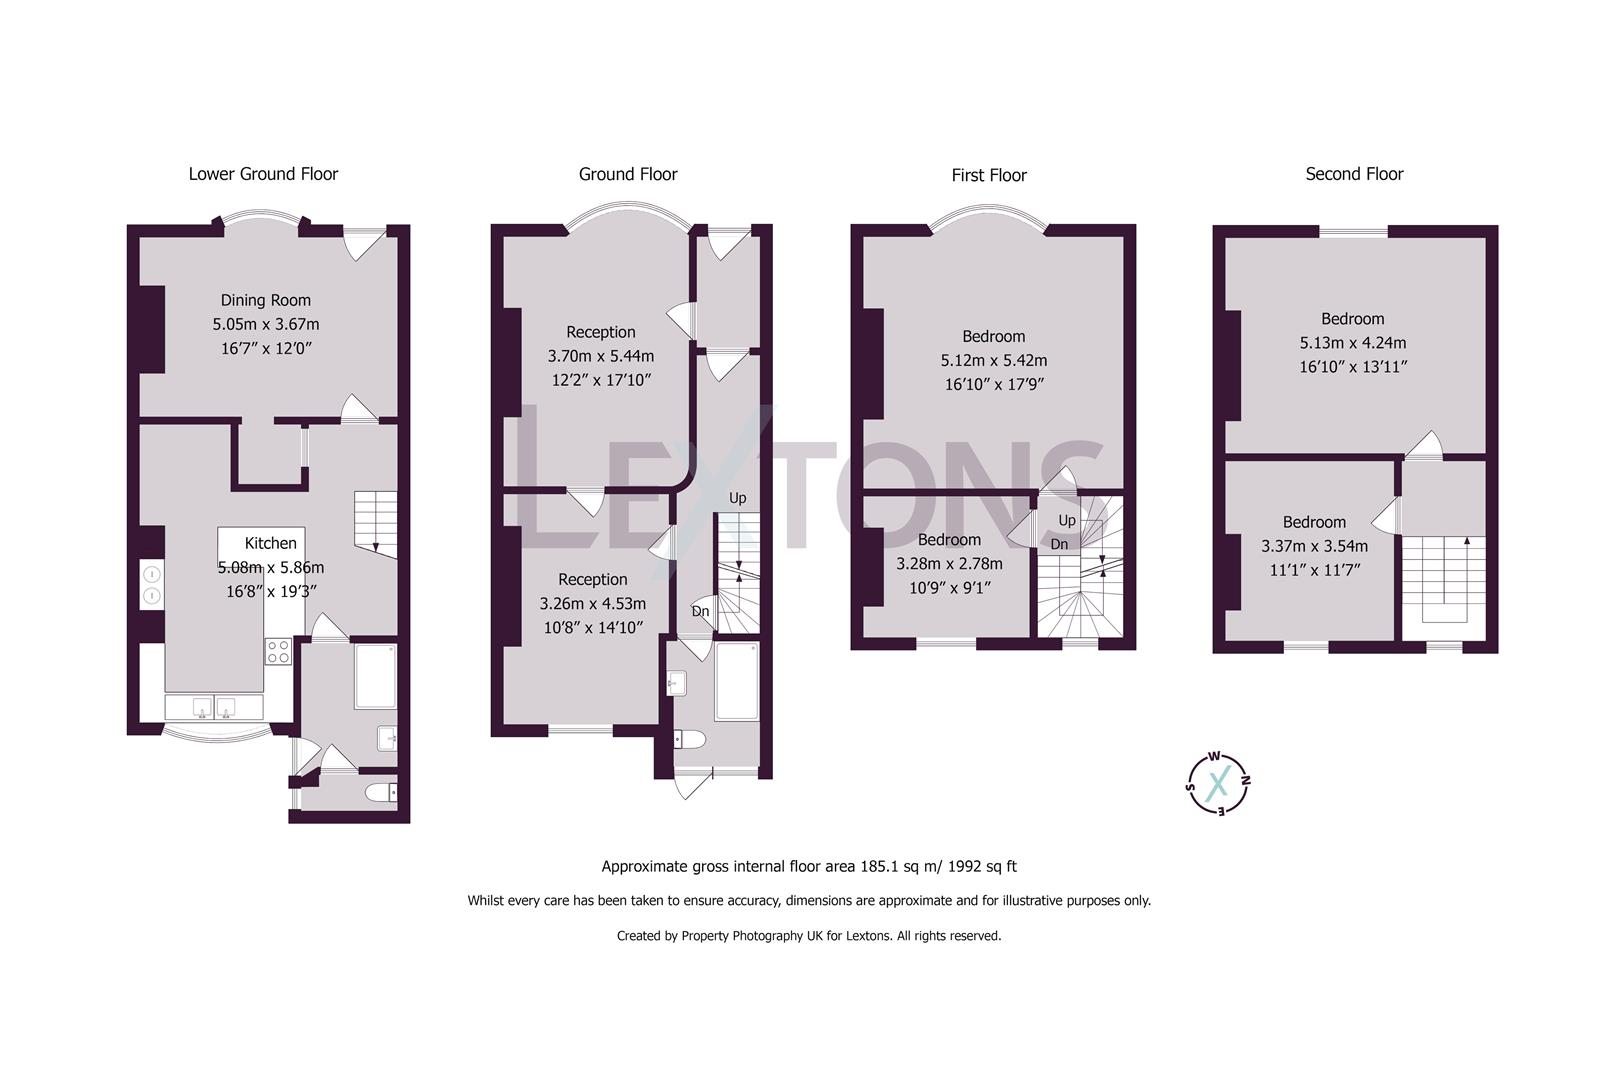 Floorplans For Hampton Place, Brighton